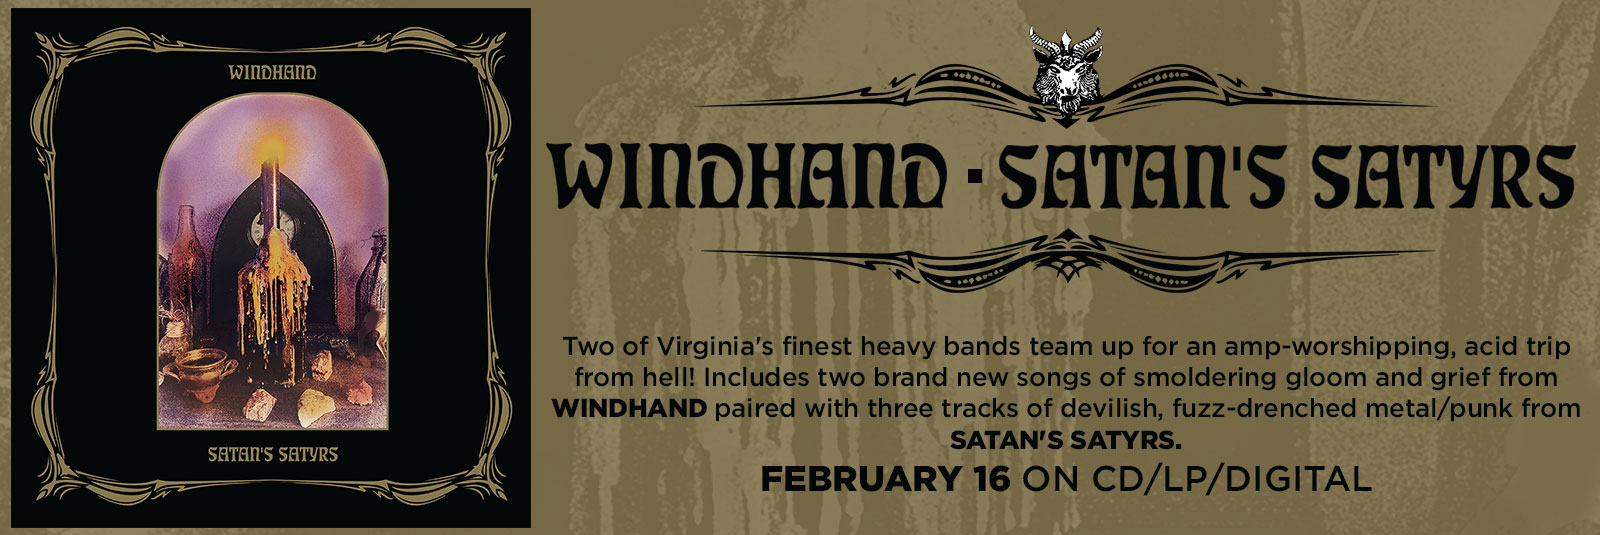 windhand-satans-satyrs-relapse-records